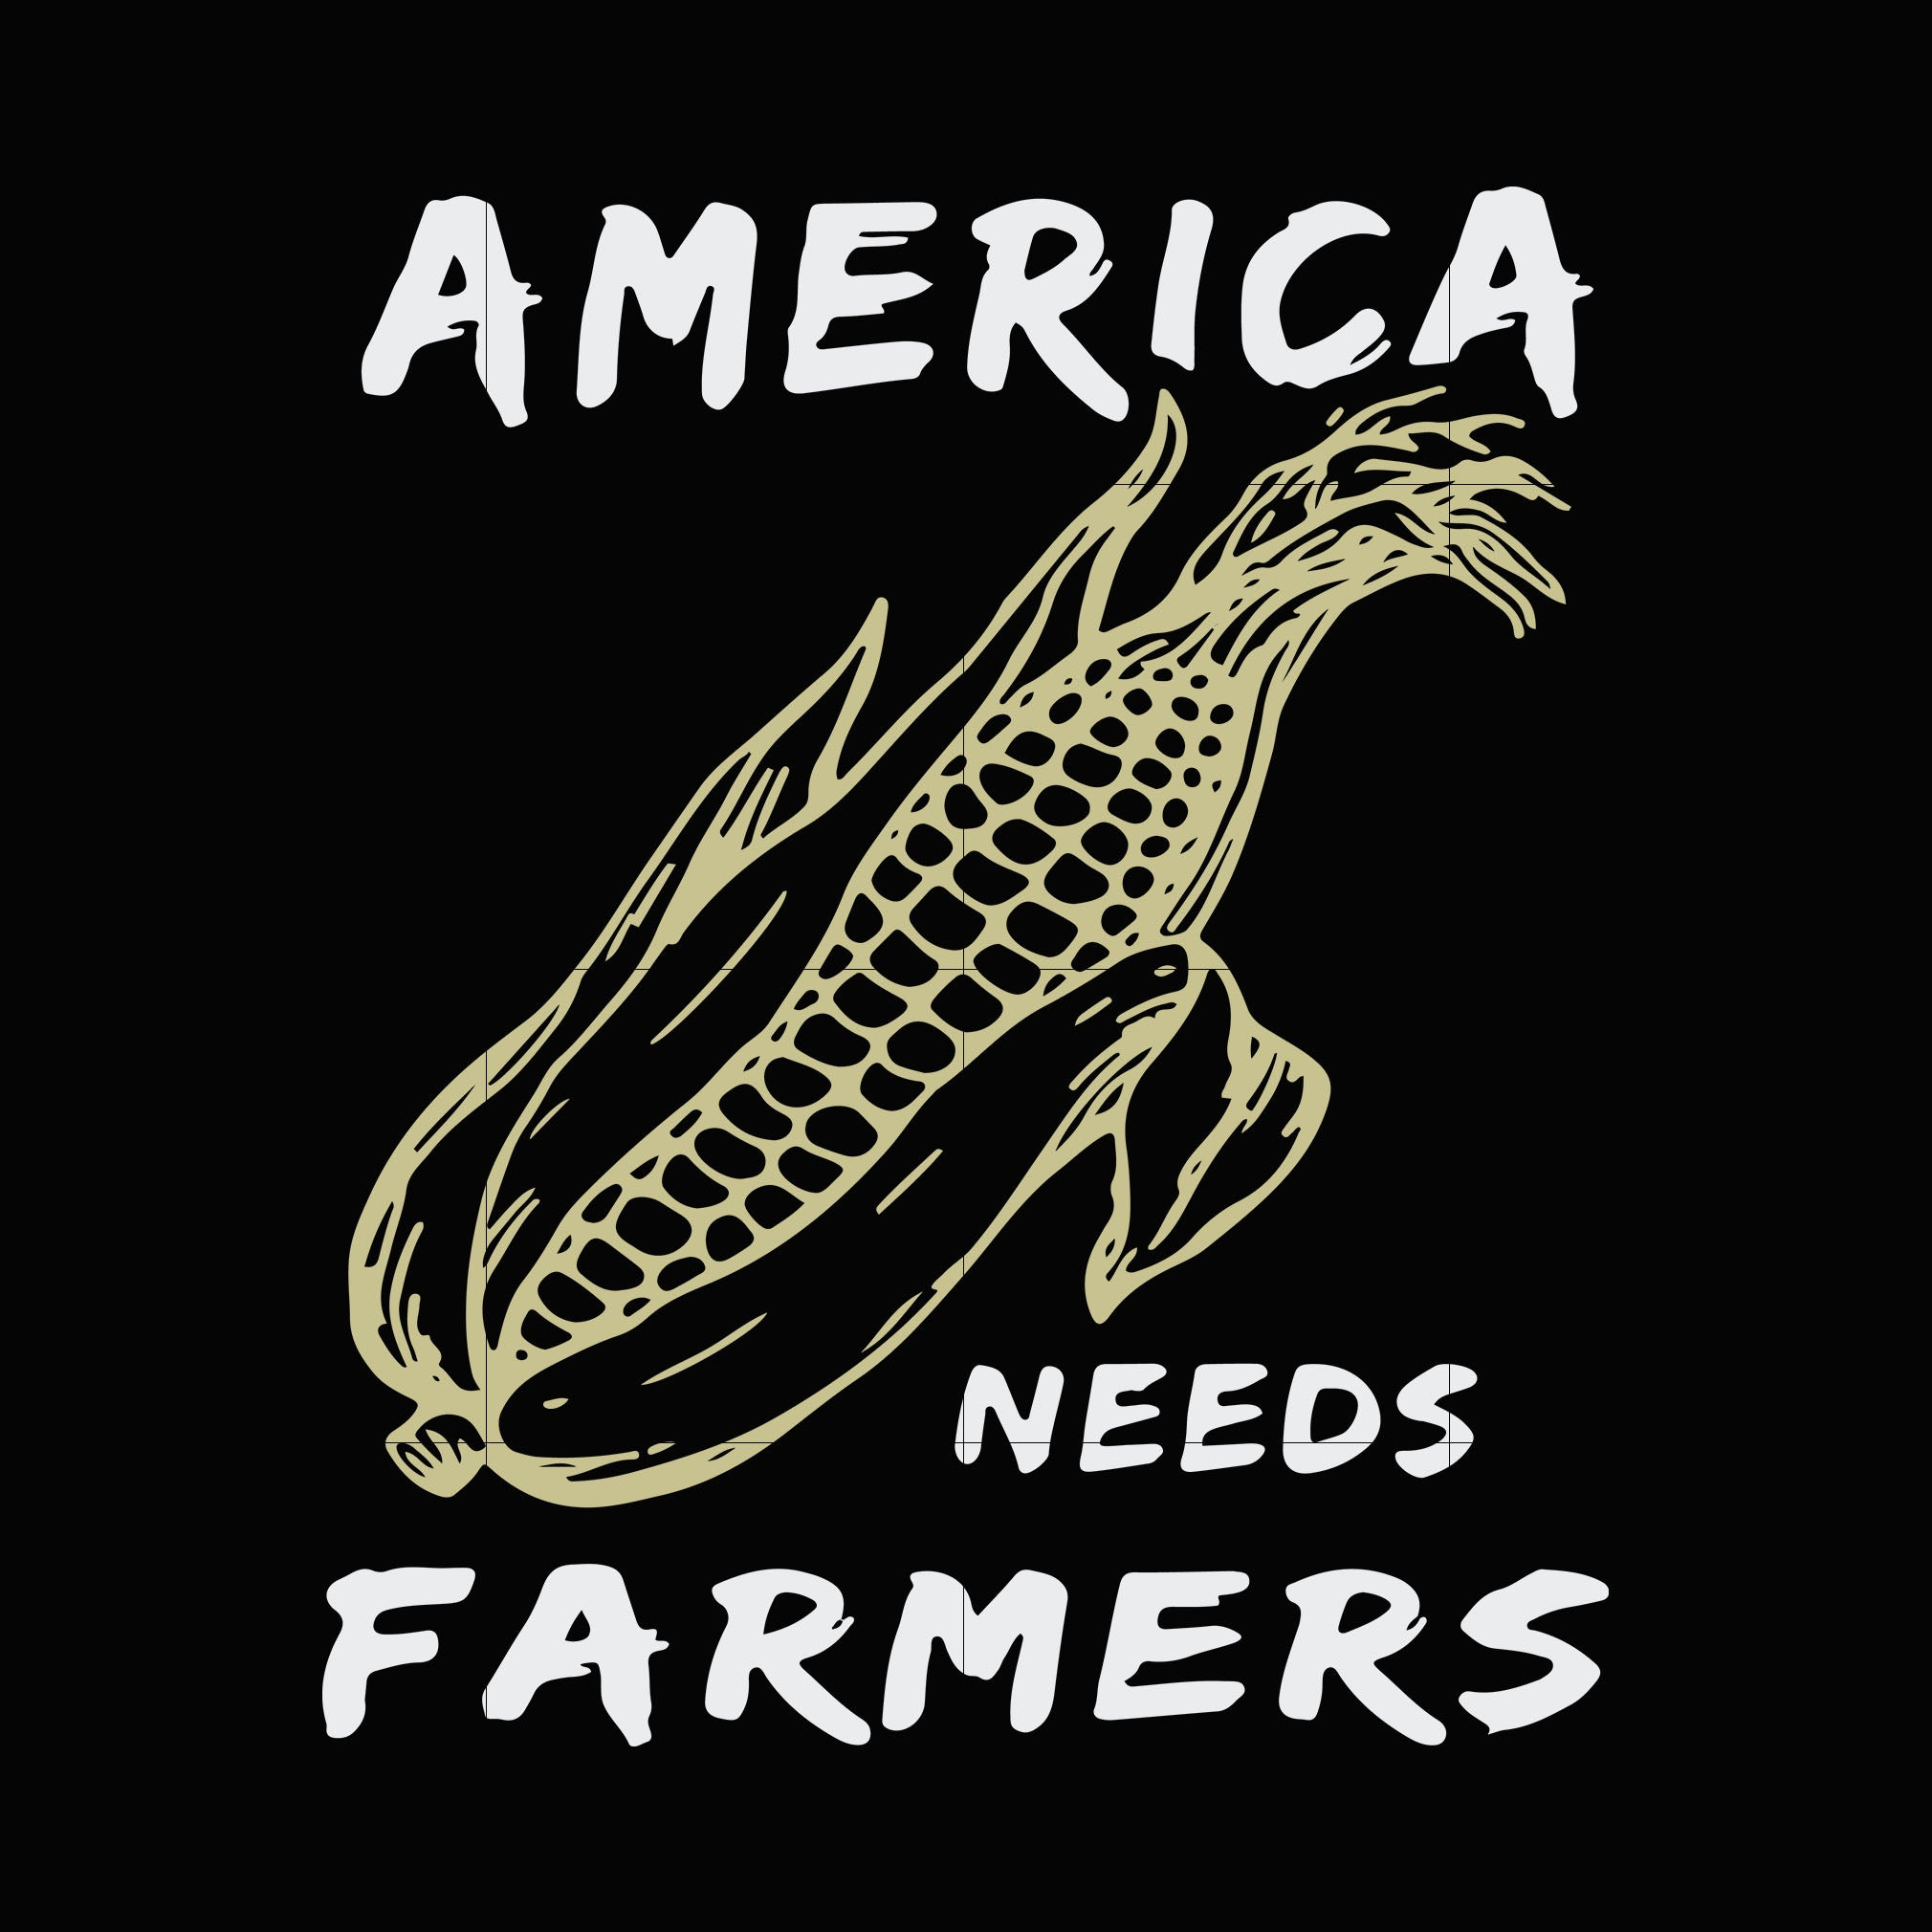 America needs farmers svg,dxf,eps,png digital file